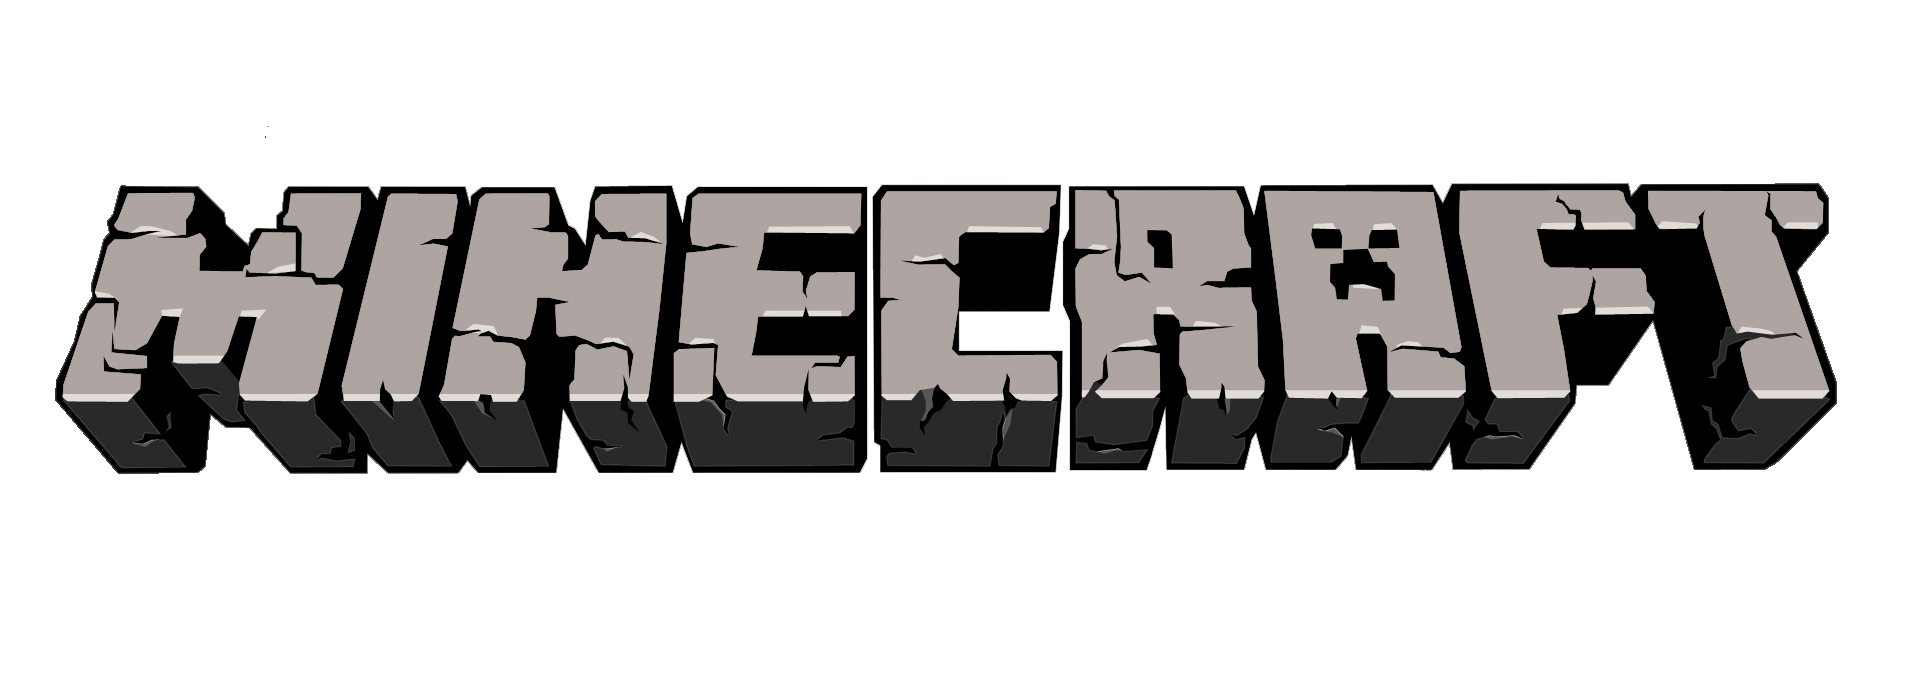 Minecraft.png - Minecraft PNG